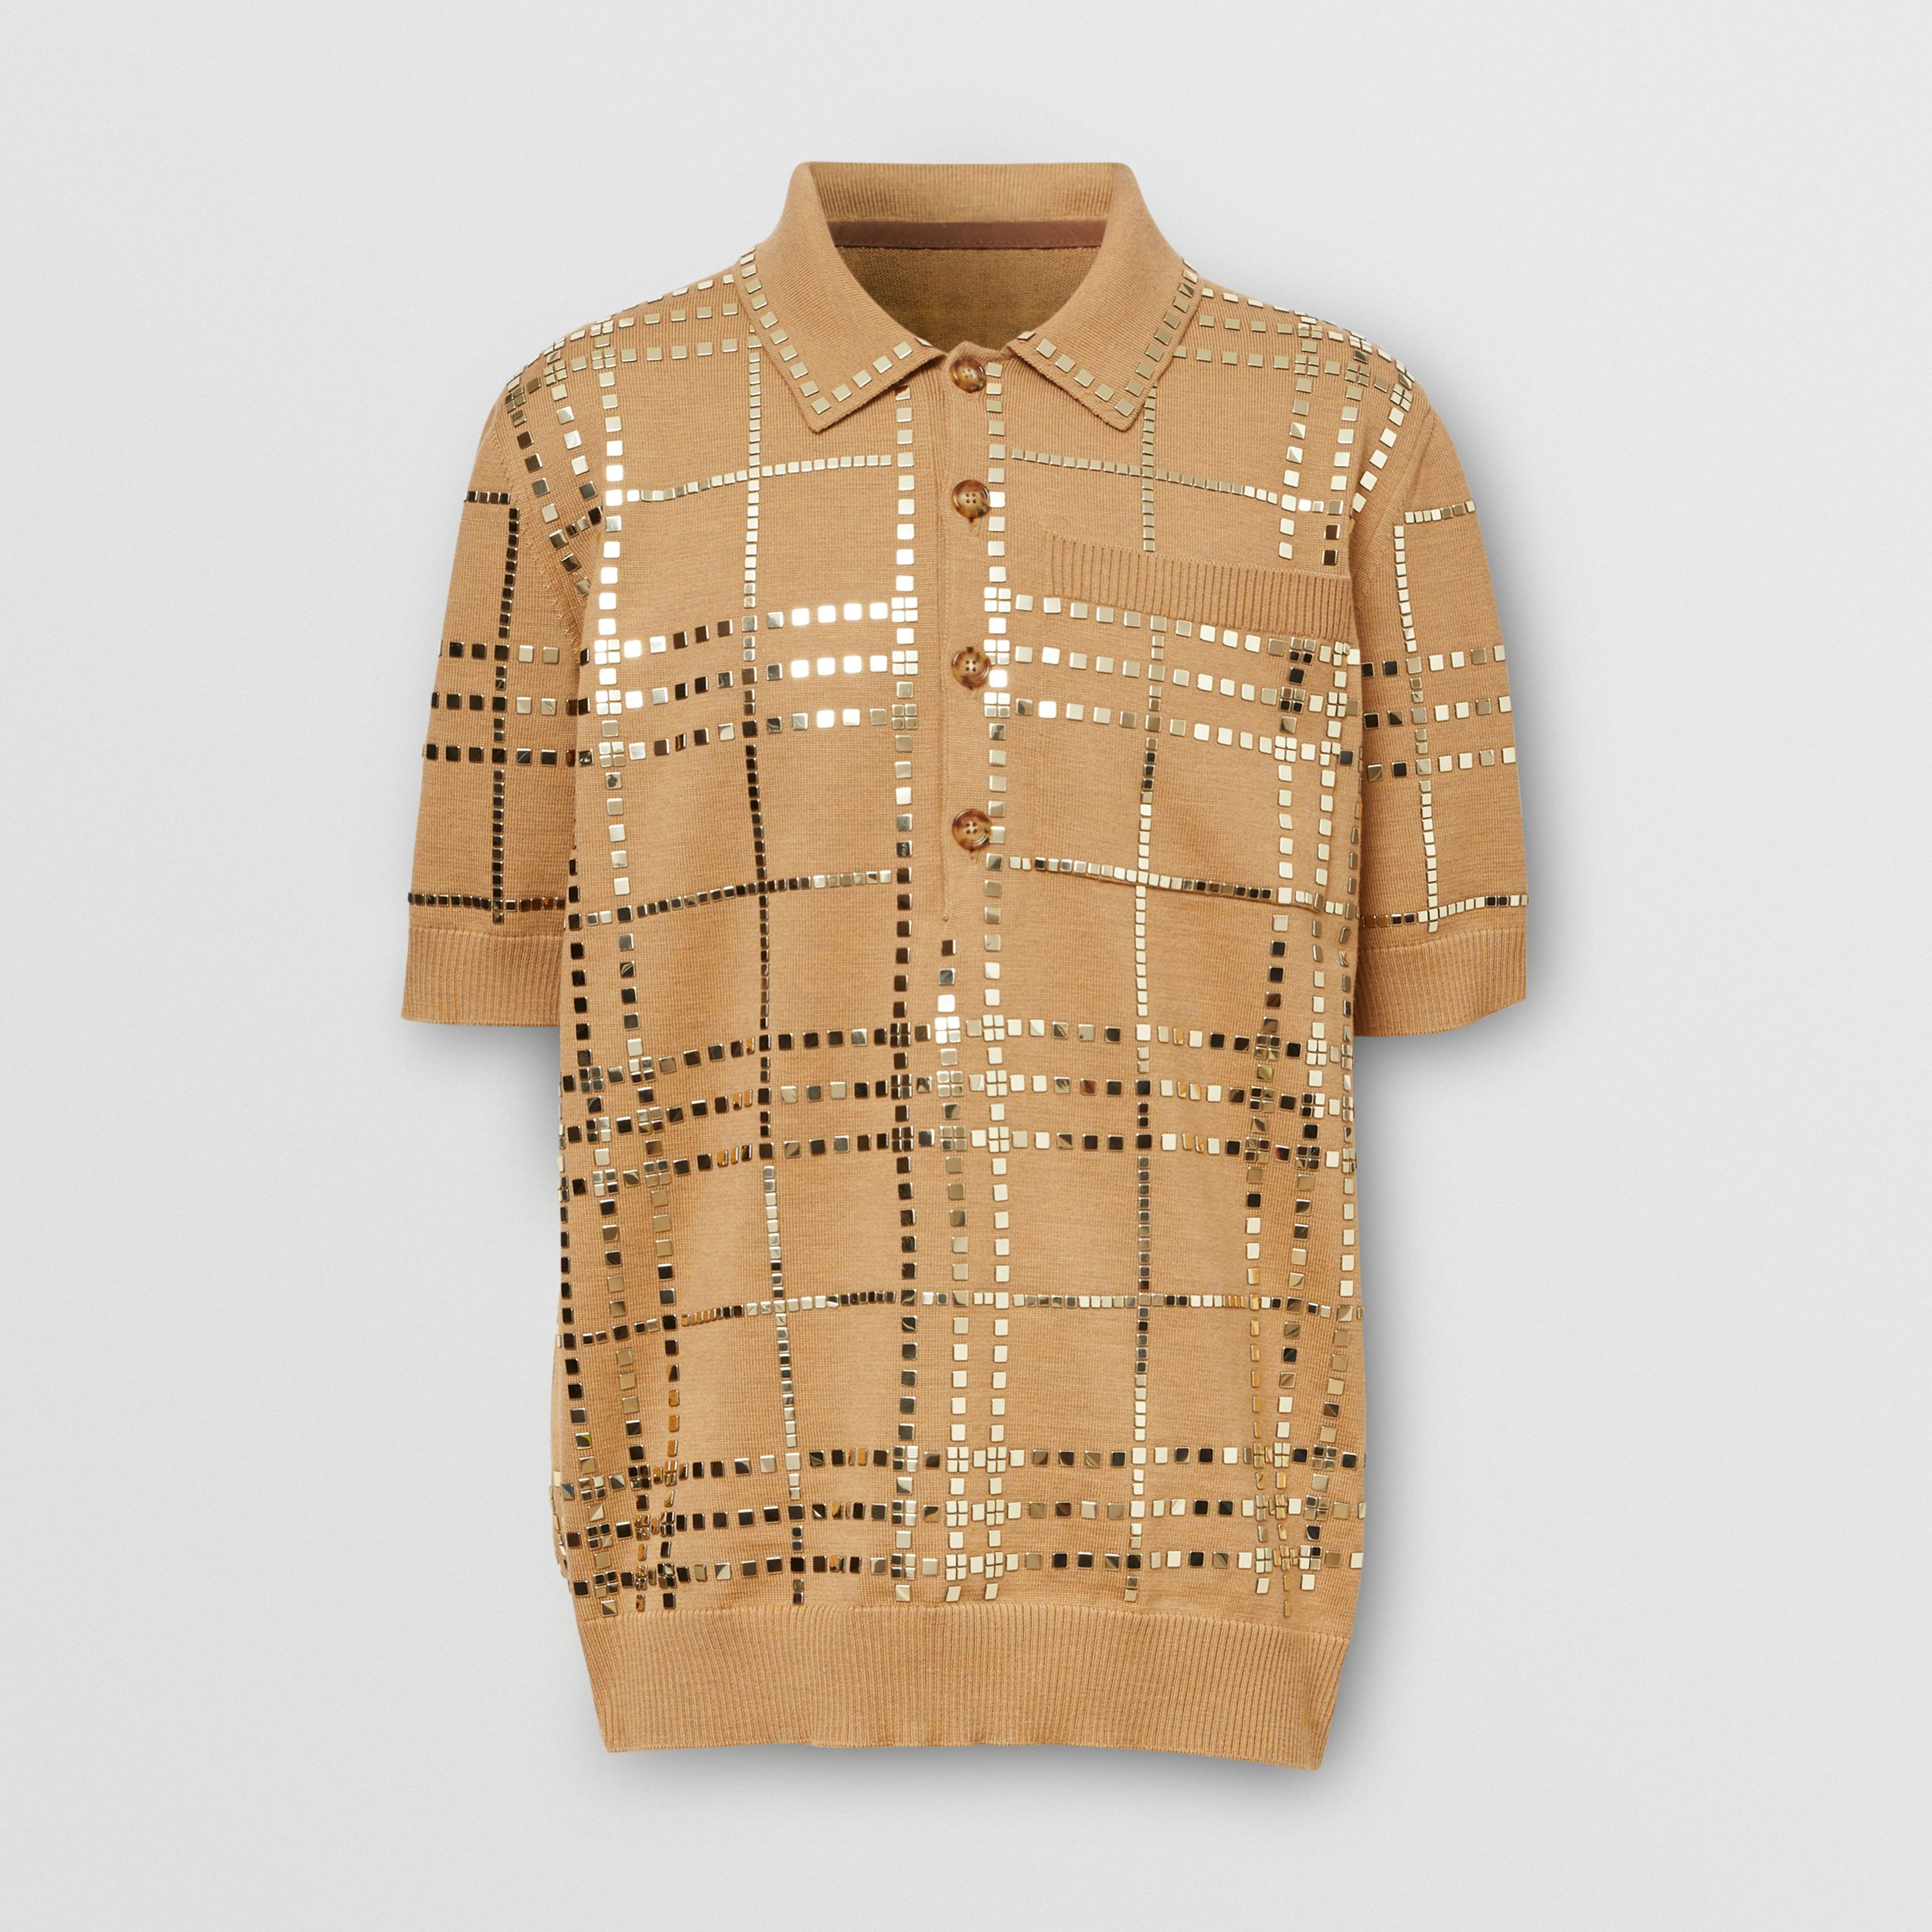 Mirrored Check Wool Jersey Polo Shirt in Camel - Men | Burberry - 4